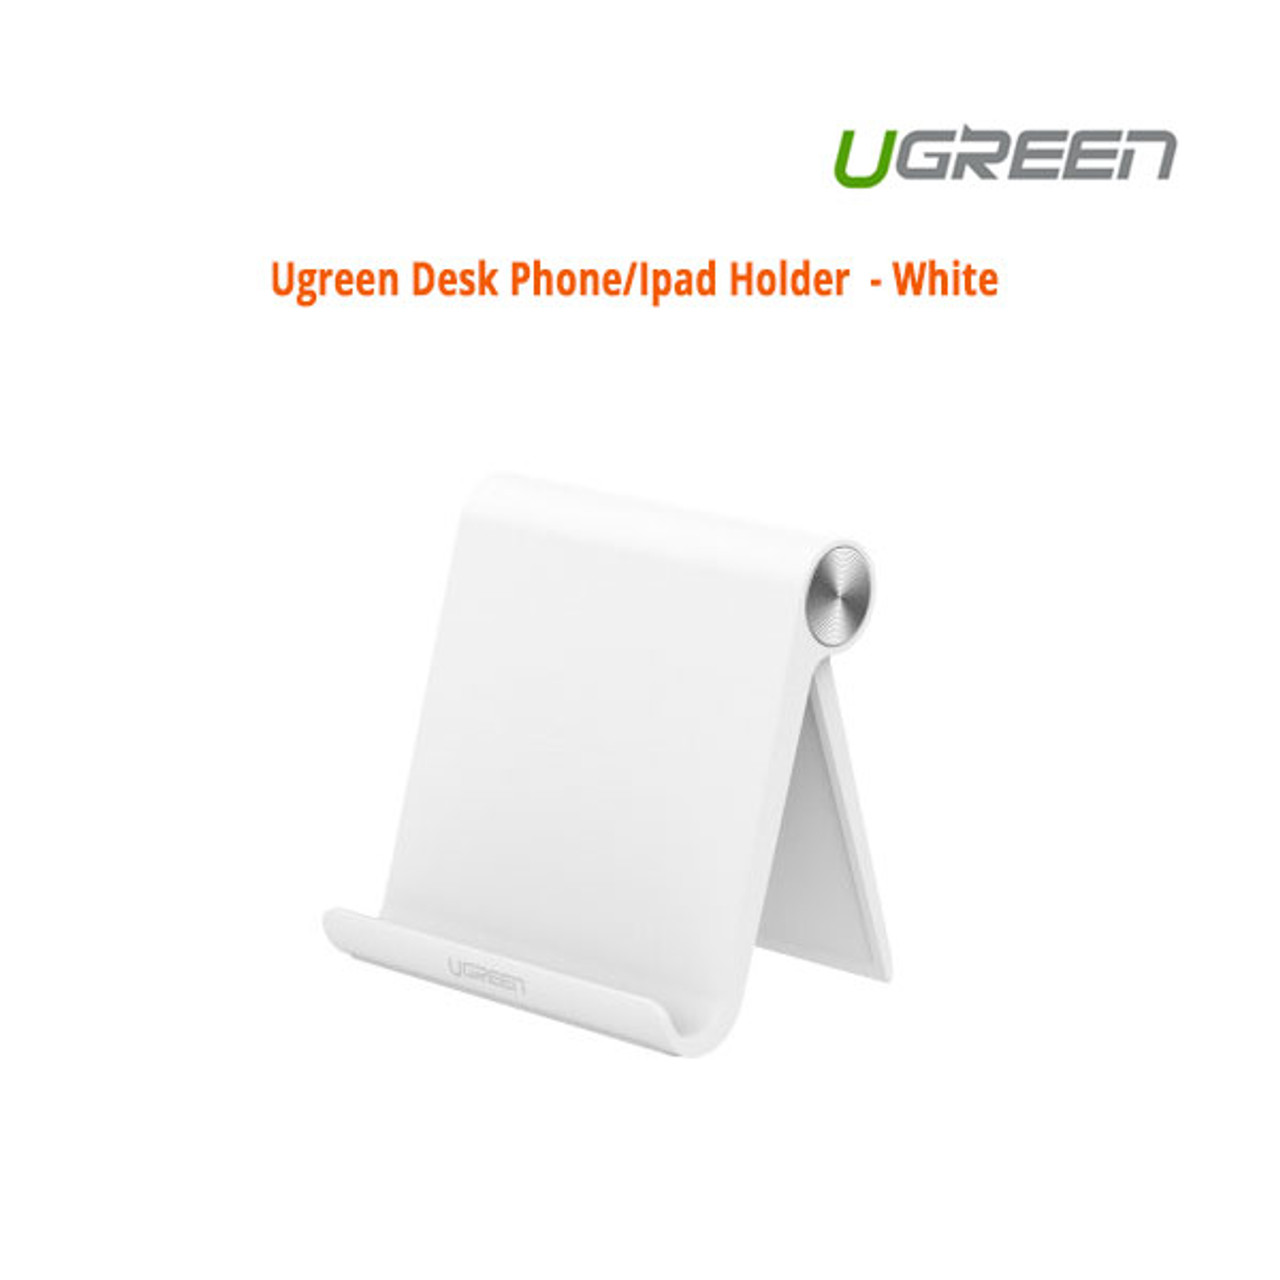 Product image for UGreen Desk Phone/Ipad Holder  - White | CX Computer Superstore